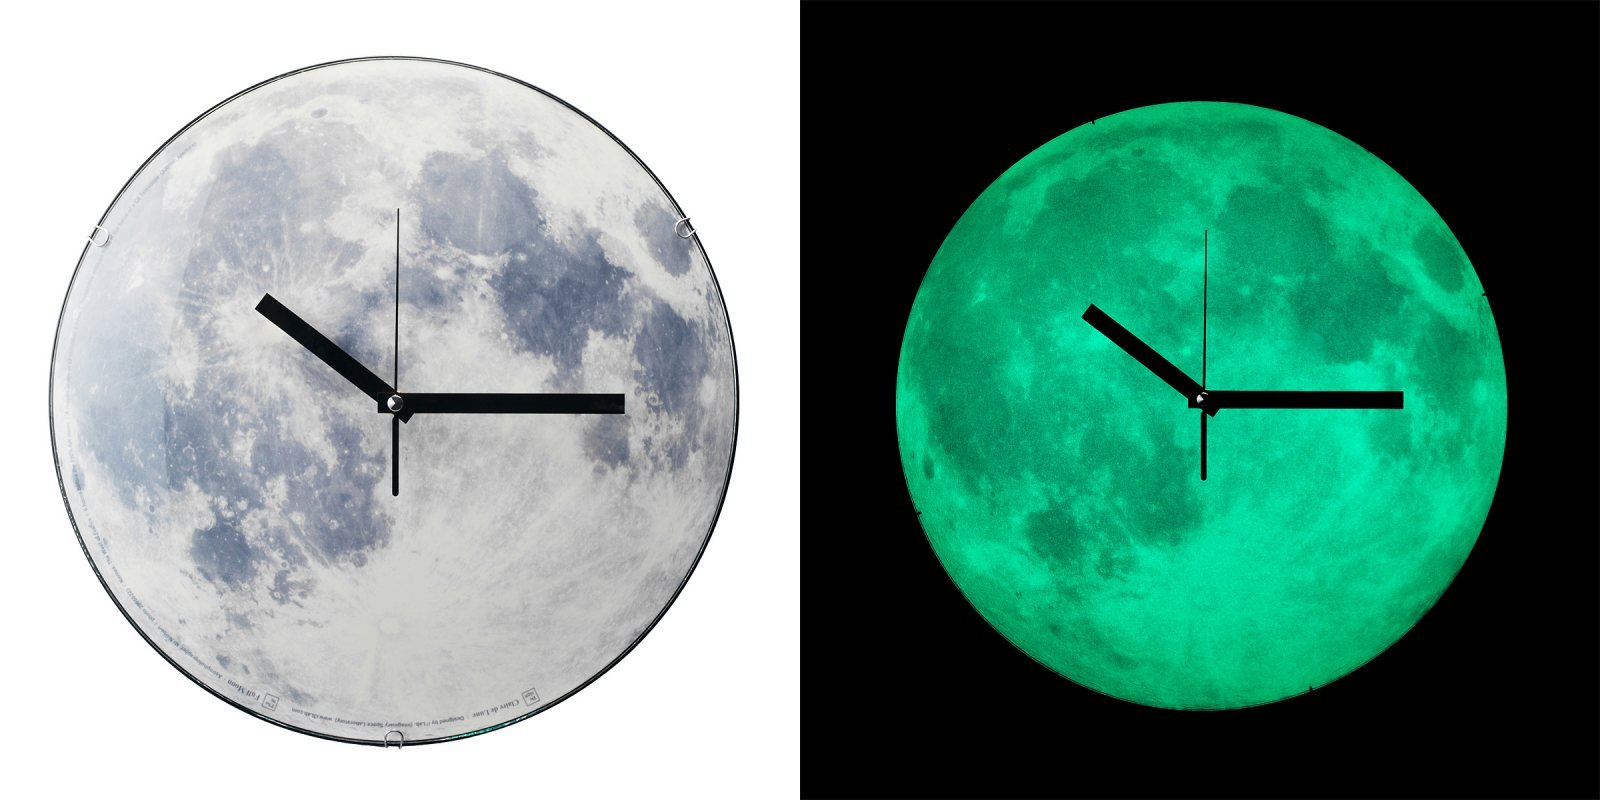 Reloj de pared luna llena ideas para regalar - Mecanismo para reloj de pared ...